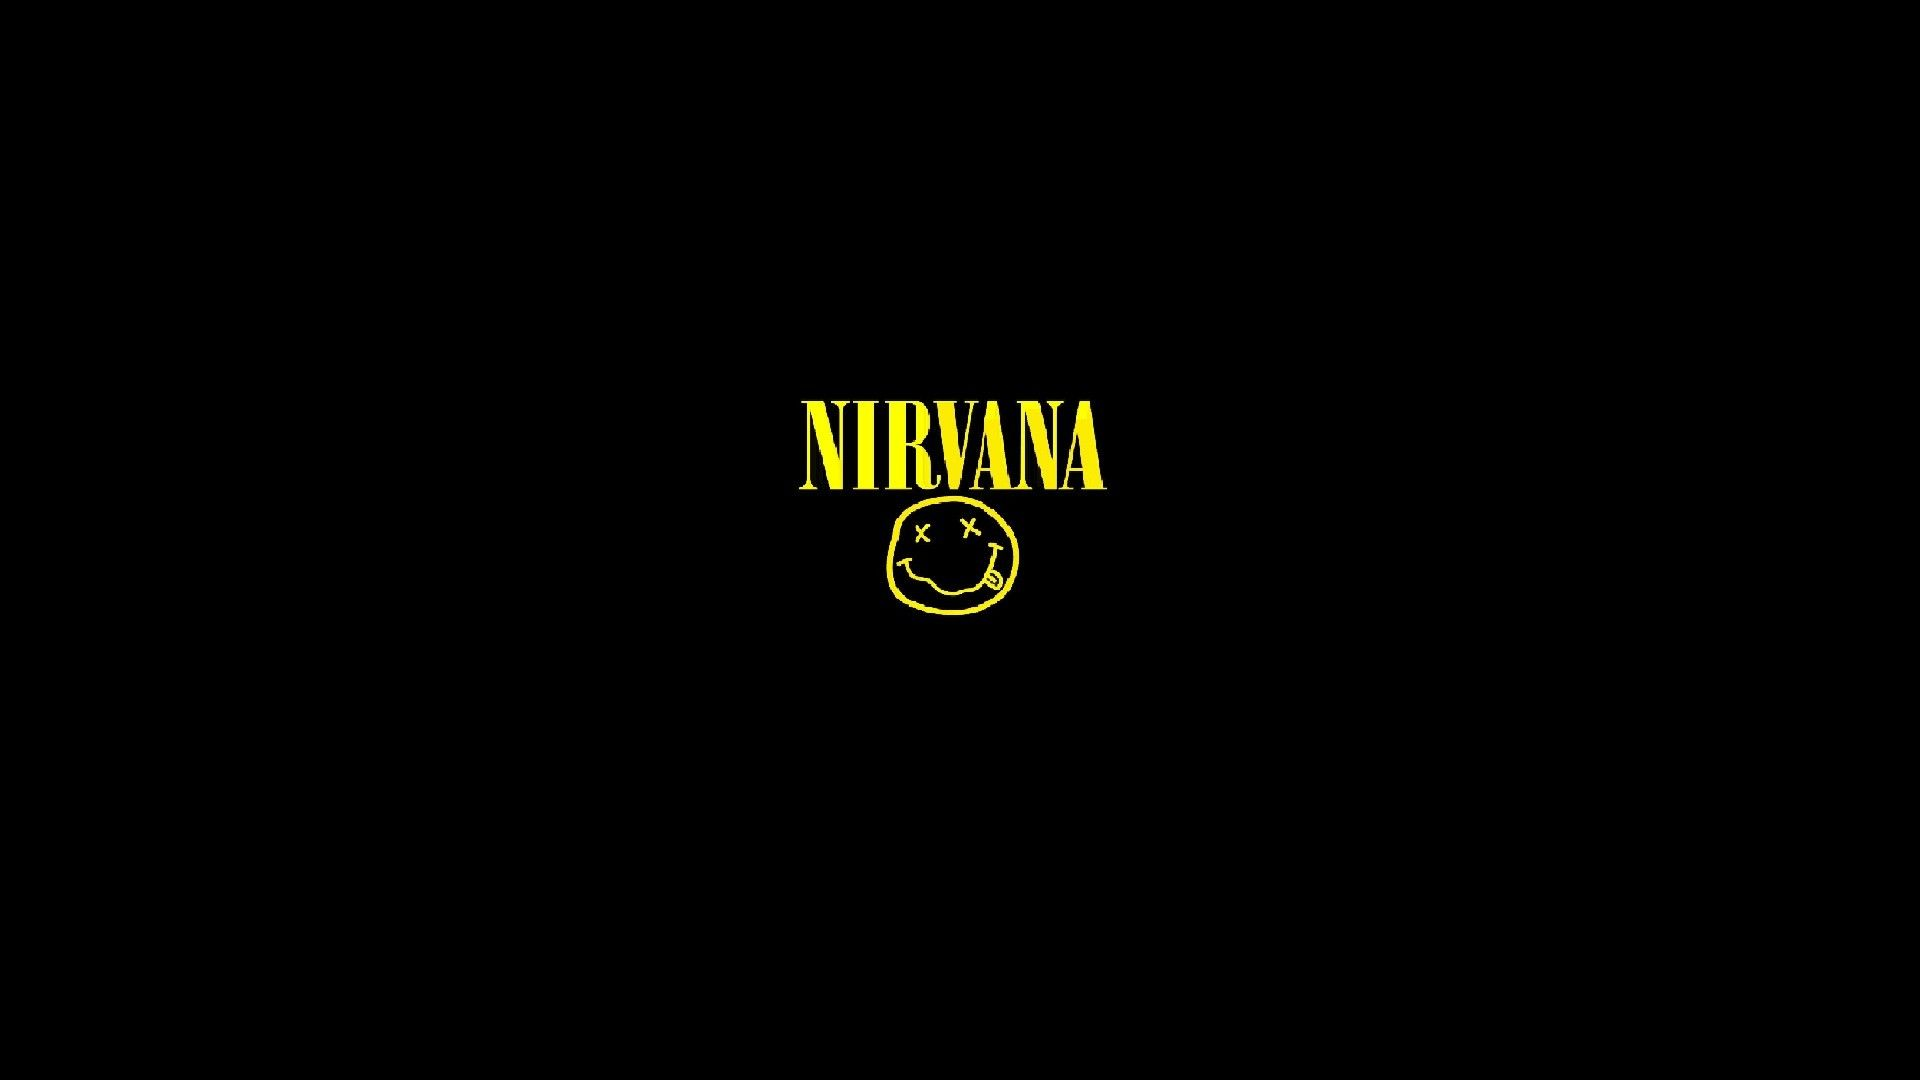 Nirvana Smiley Face Album Cover Background 1 HD Wallpapers